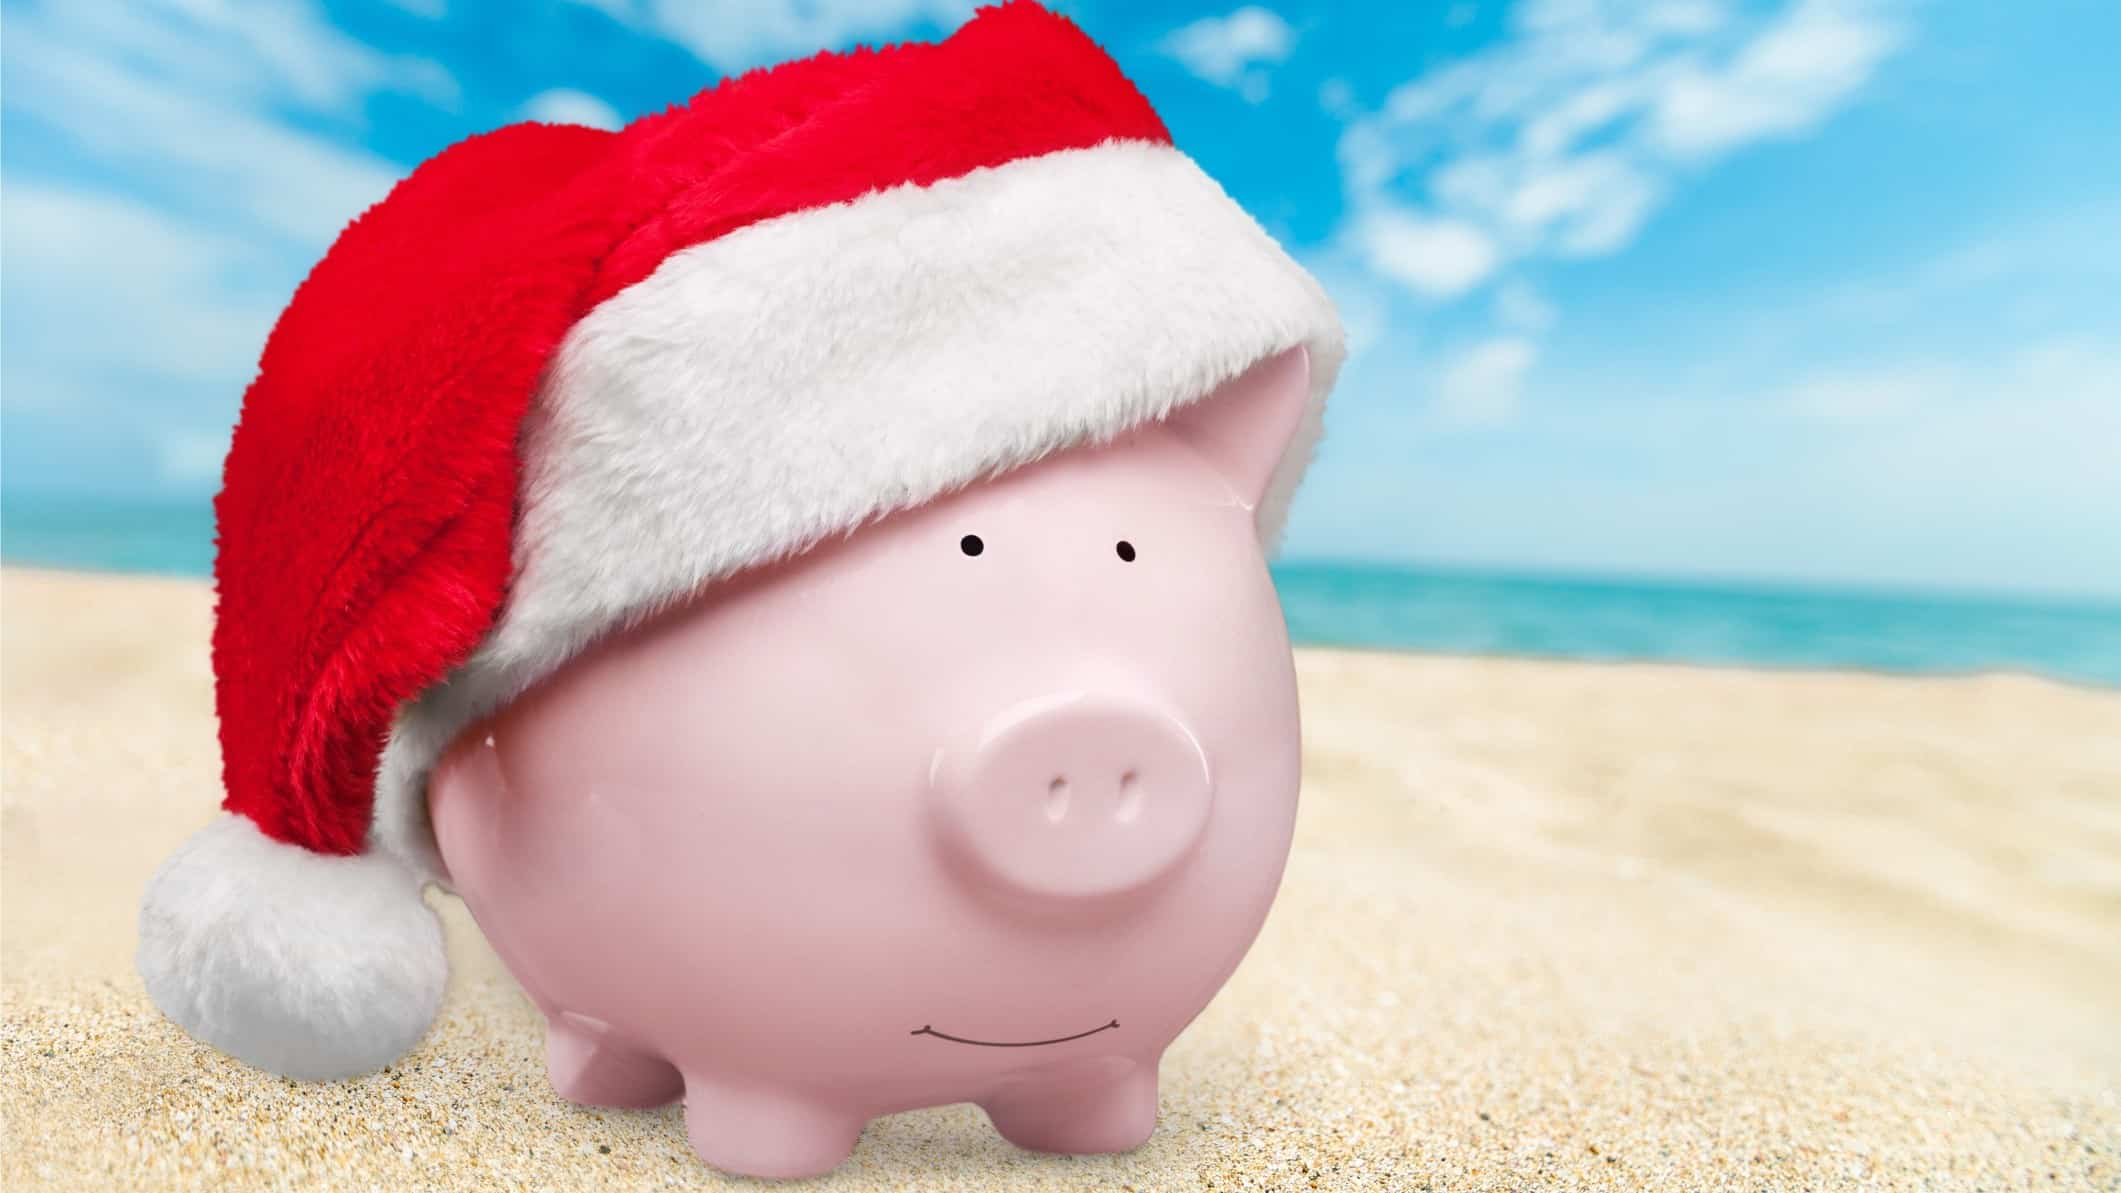 piggy bank sitting on beach wearing christmas hat and representing asx share